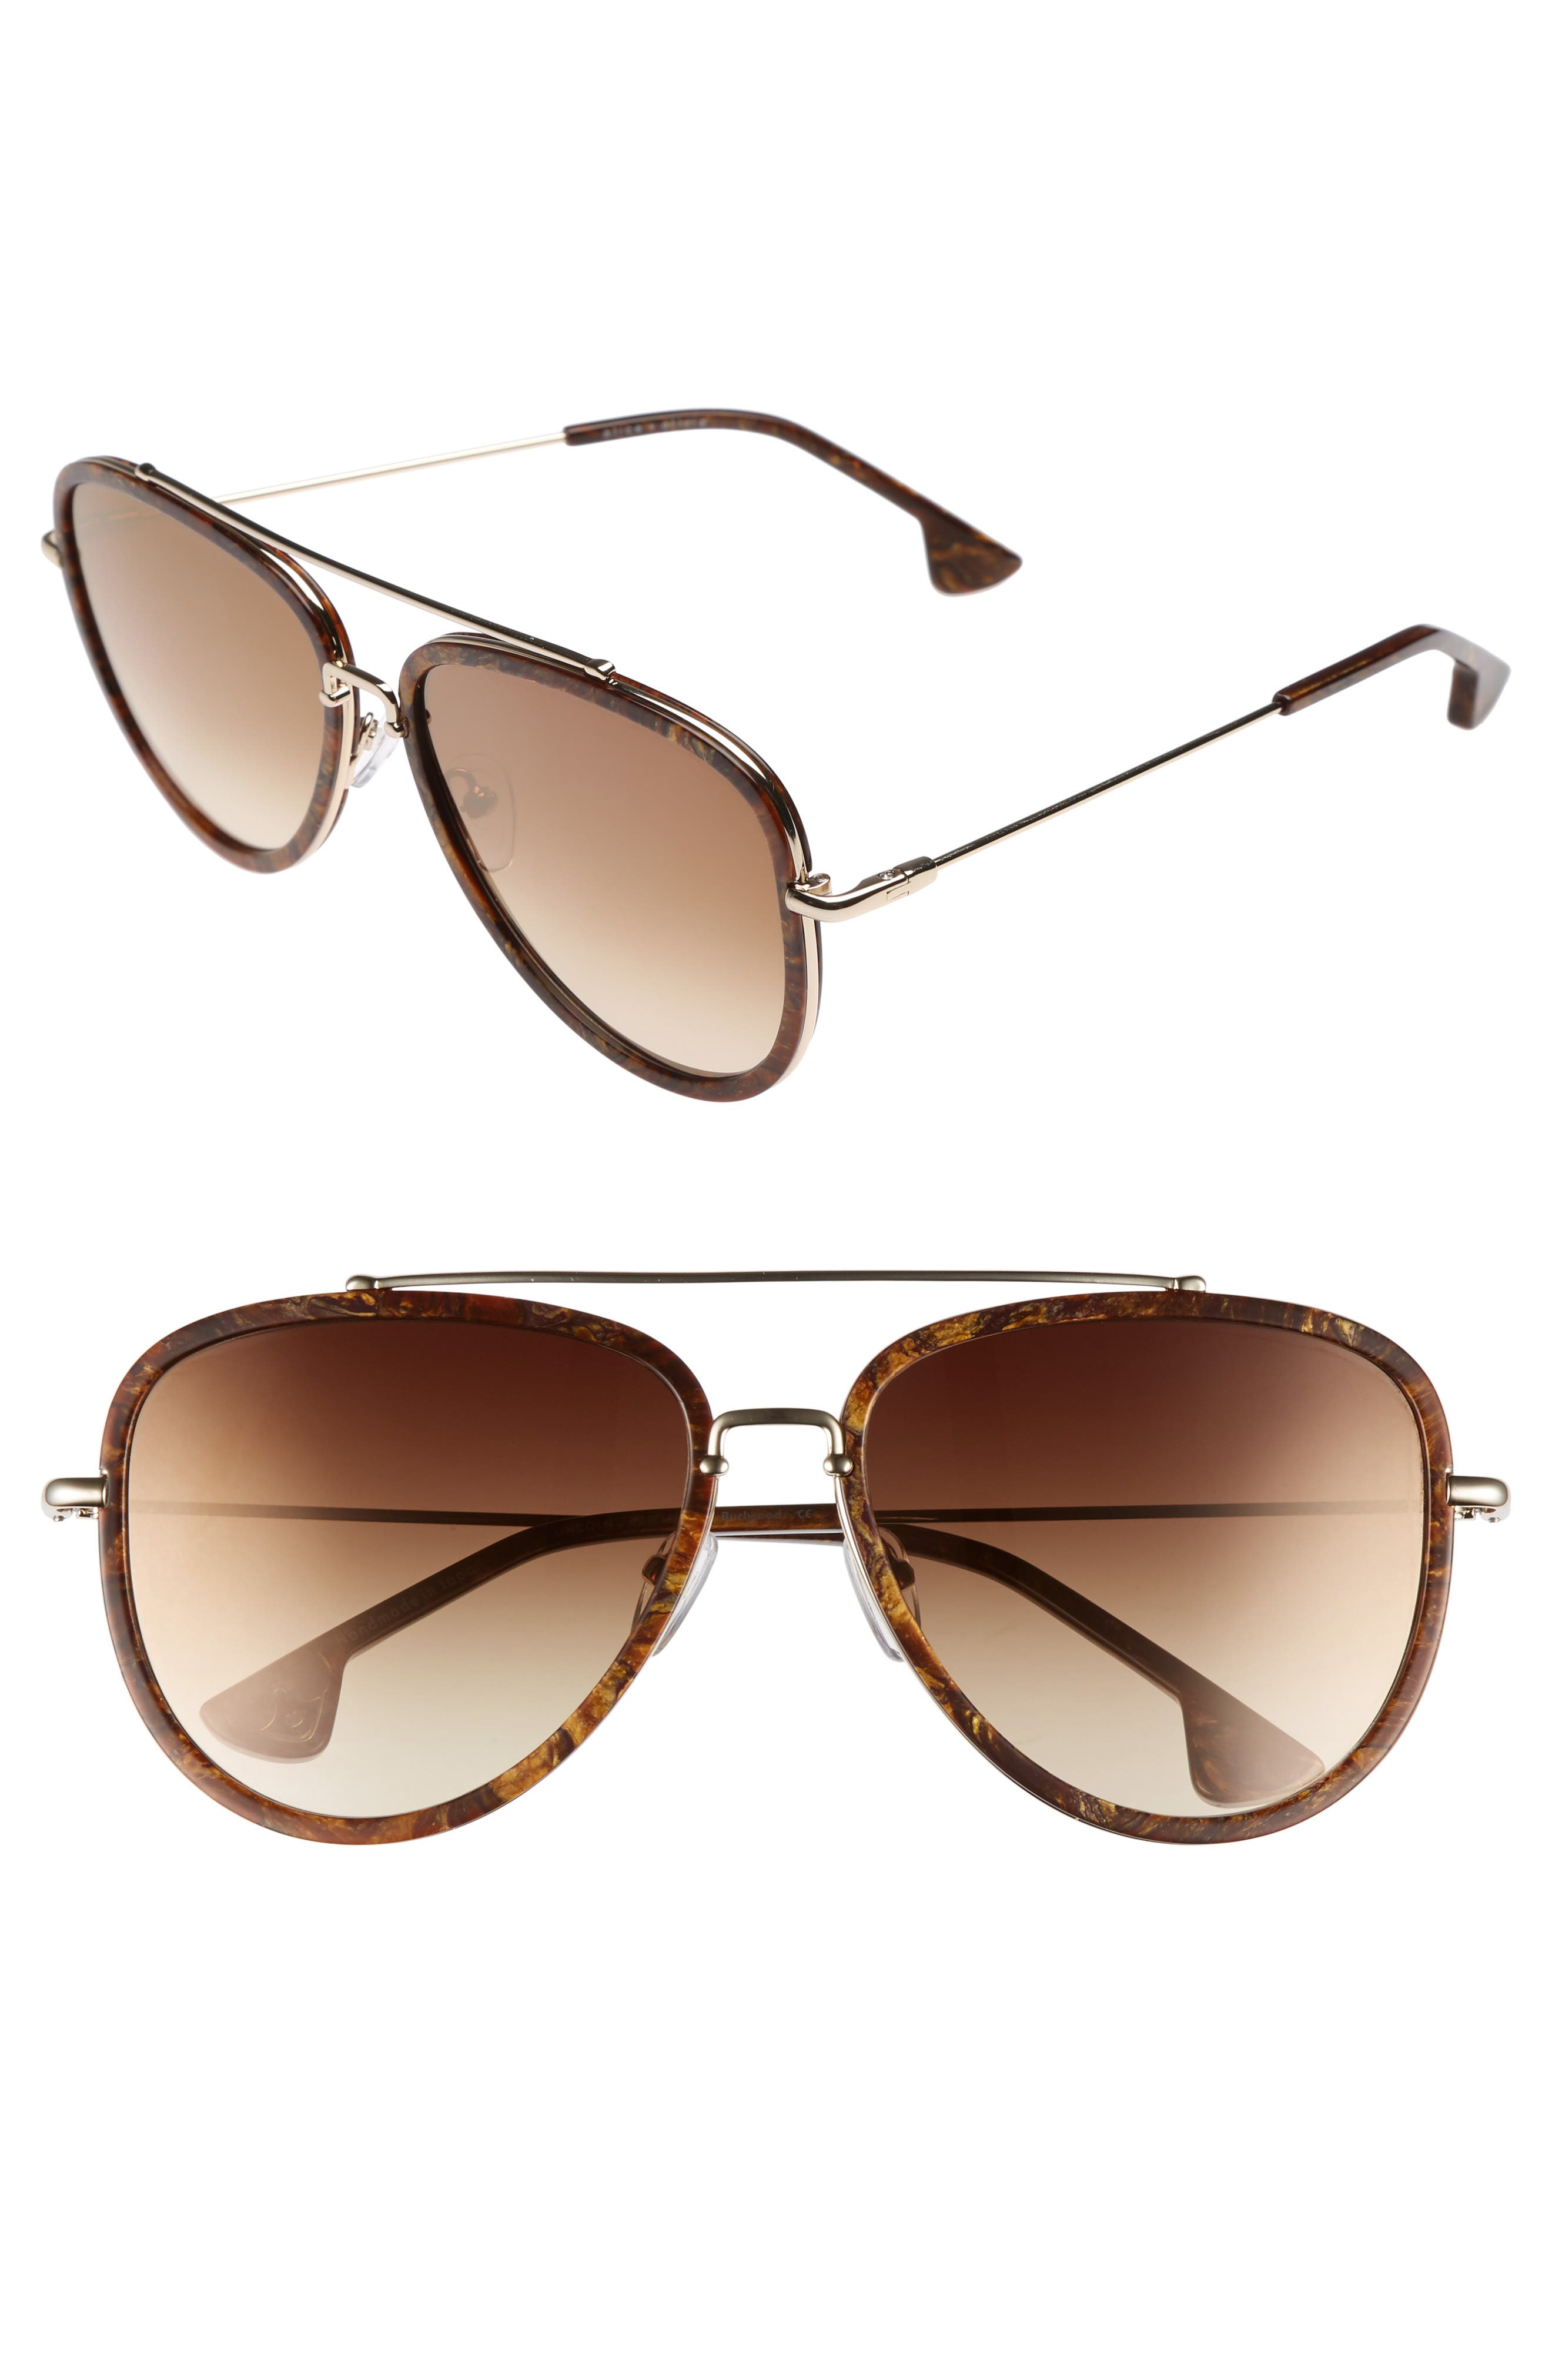 Alternate Image 1 Selected - Alice + Olivia Lincoln 58mm Aviator Sunglasses